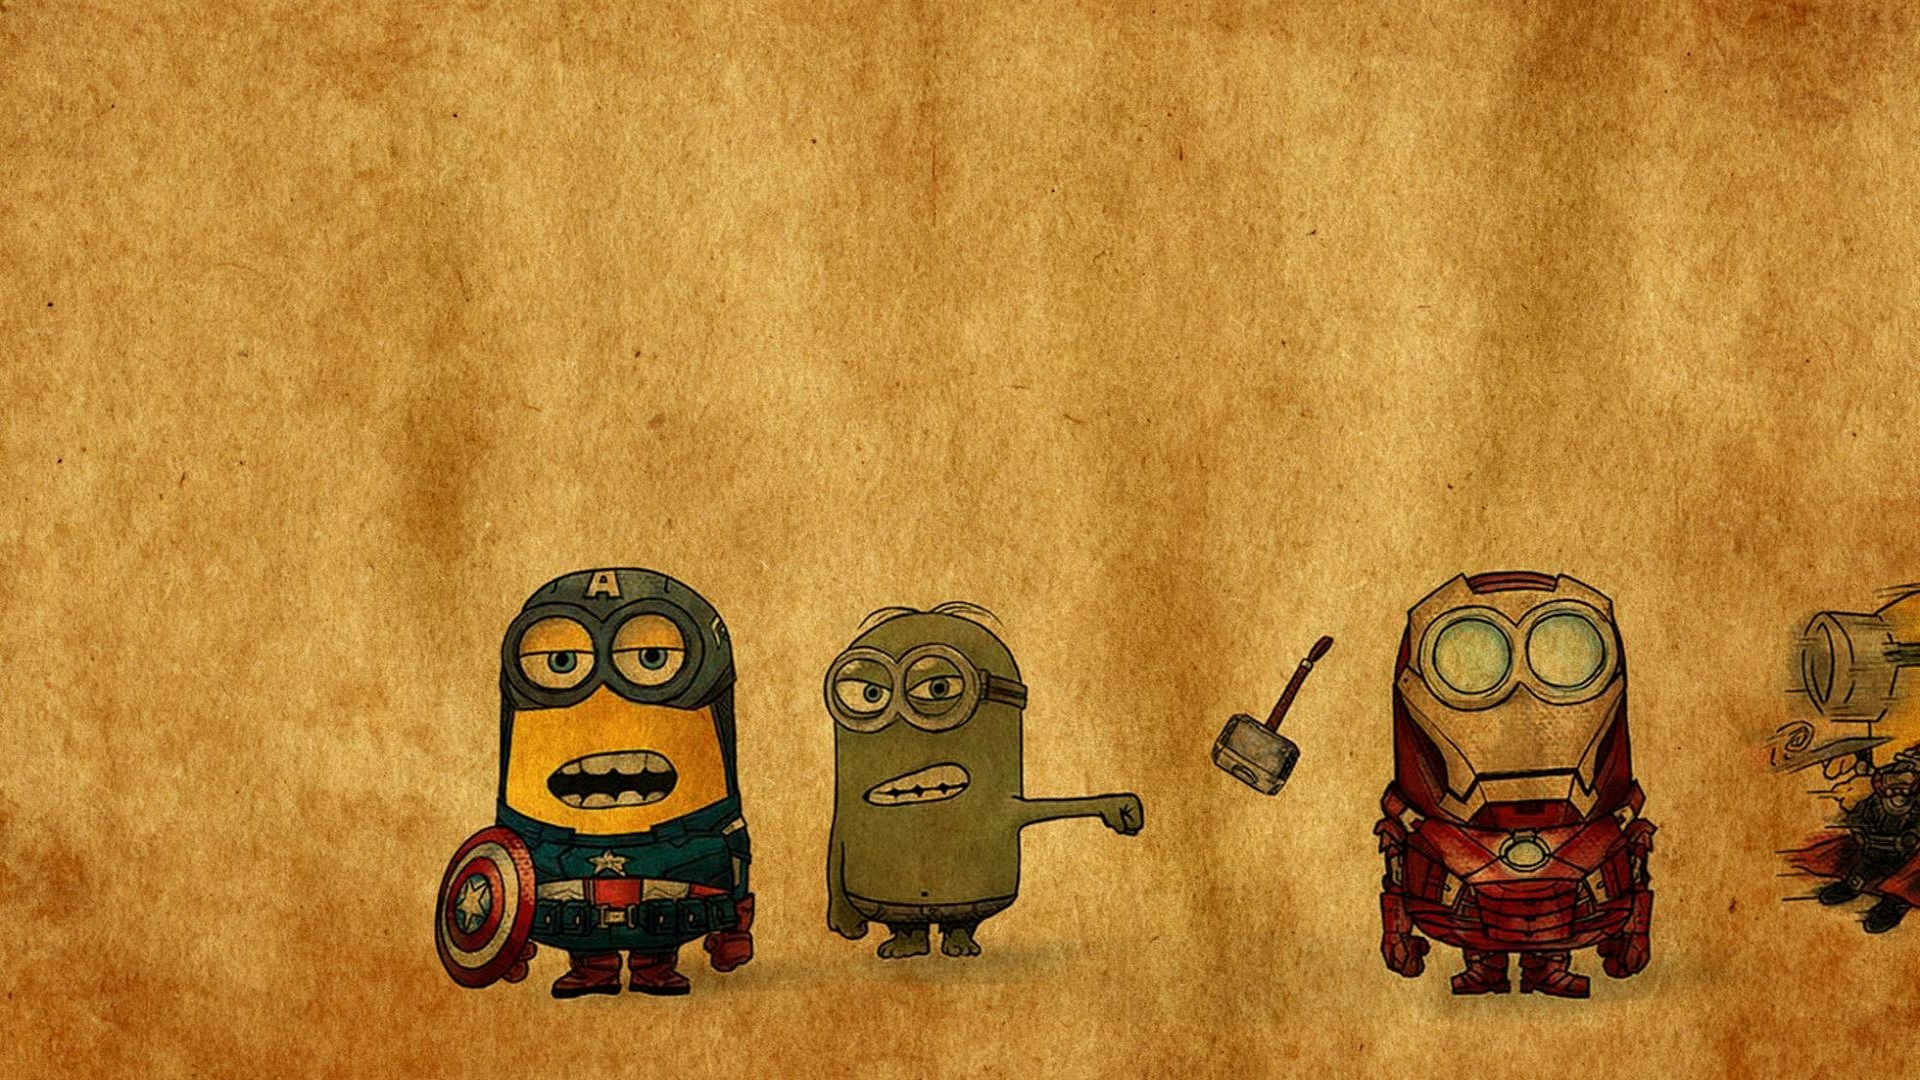 Marvel Minions   Avengers X men Minions Wallpapers   SlotsMarvel 1920x1080